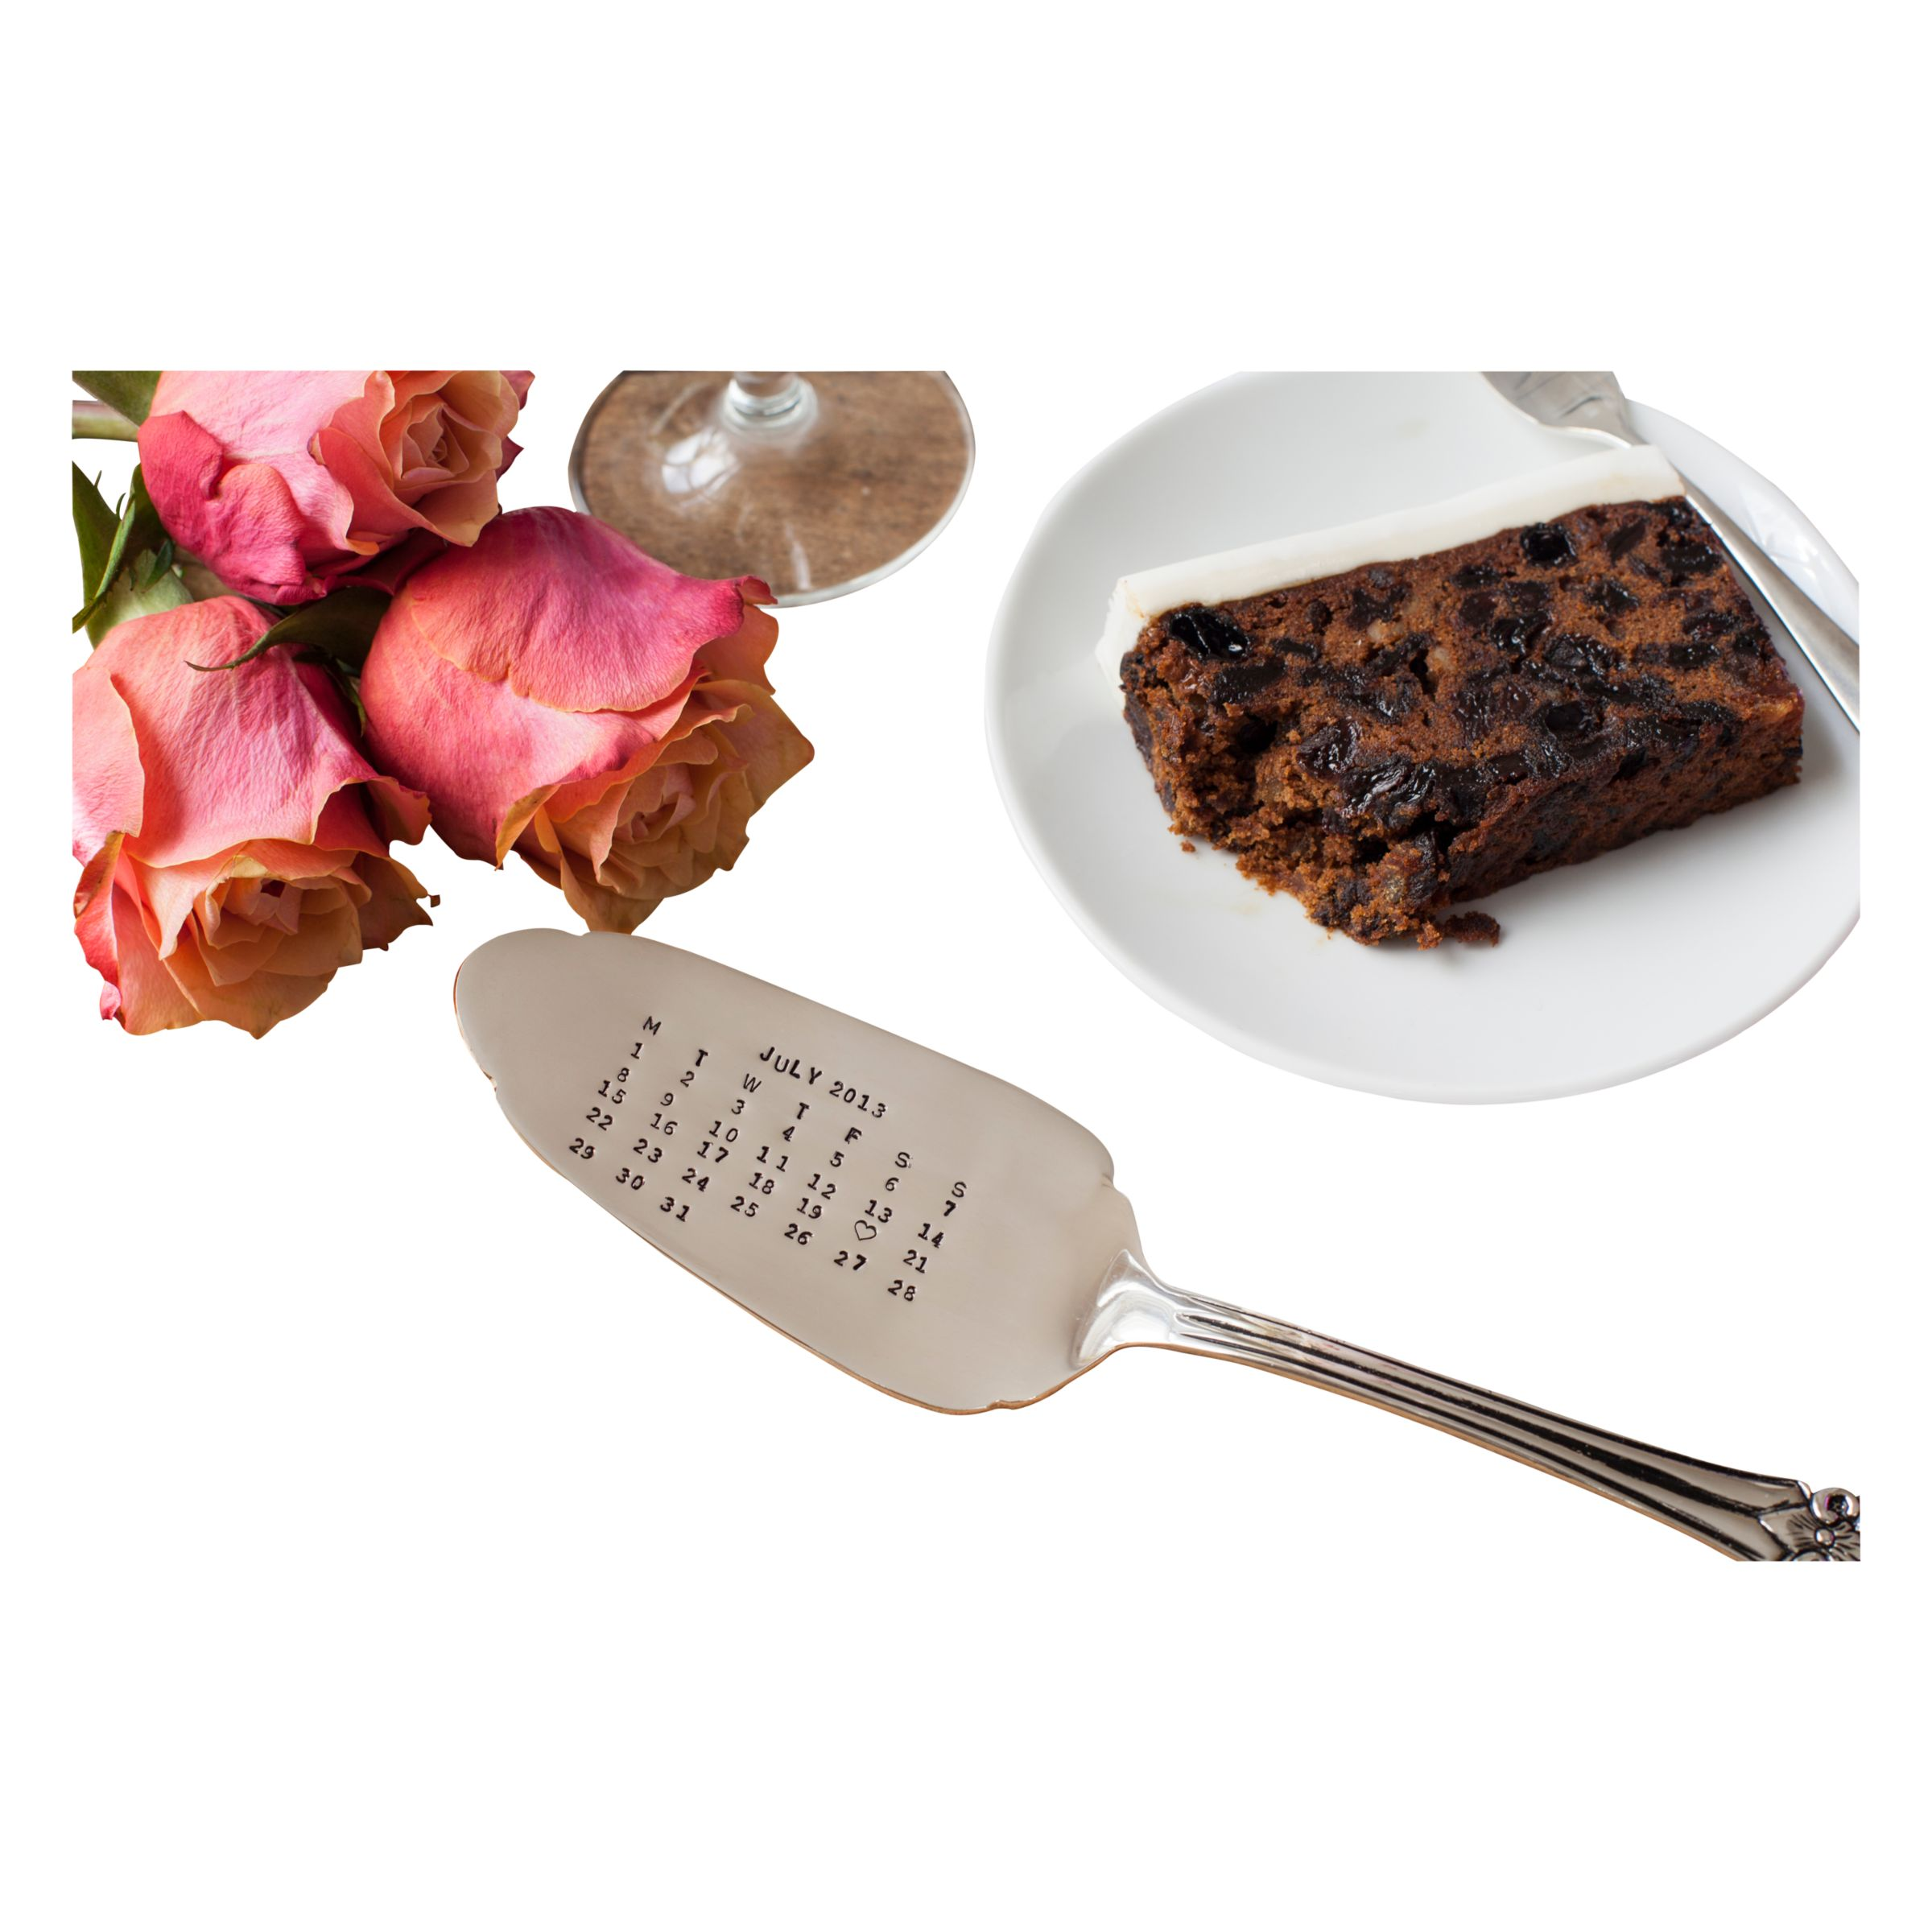 Cutlery Commission Cutlery Commission Silver-Plated Personalised Date Cake Slice